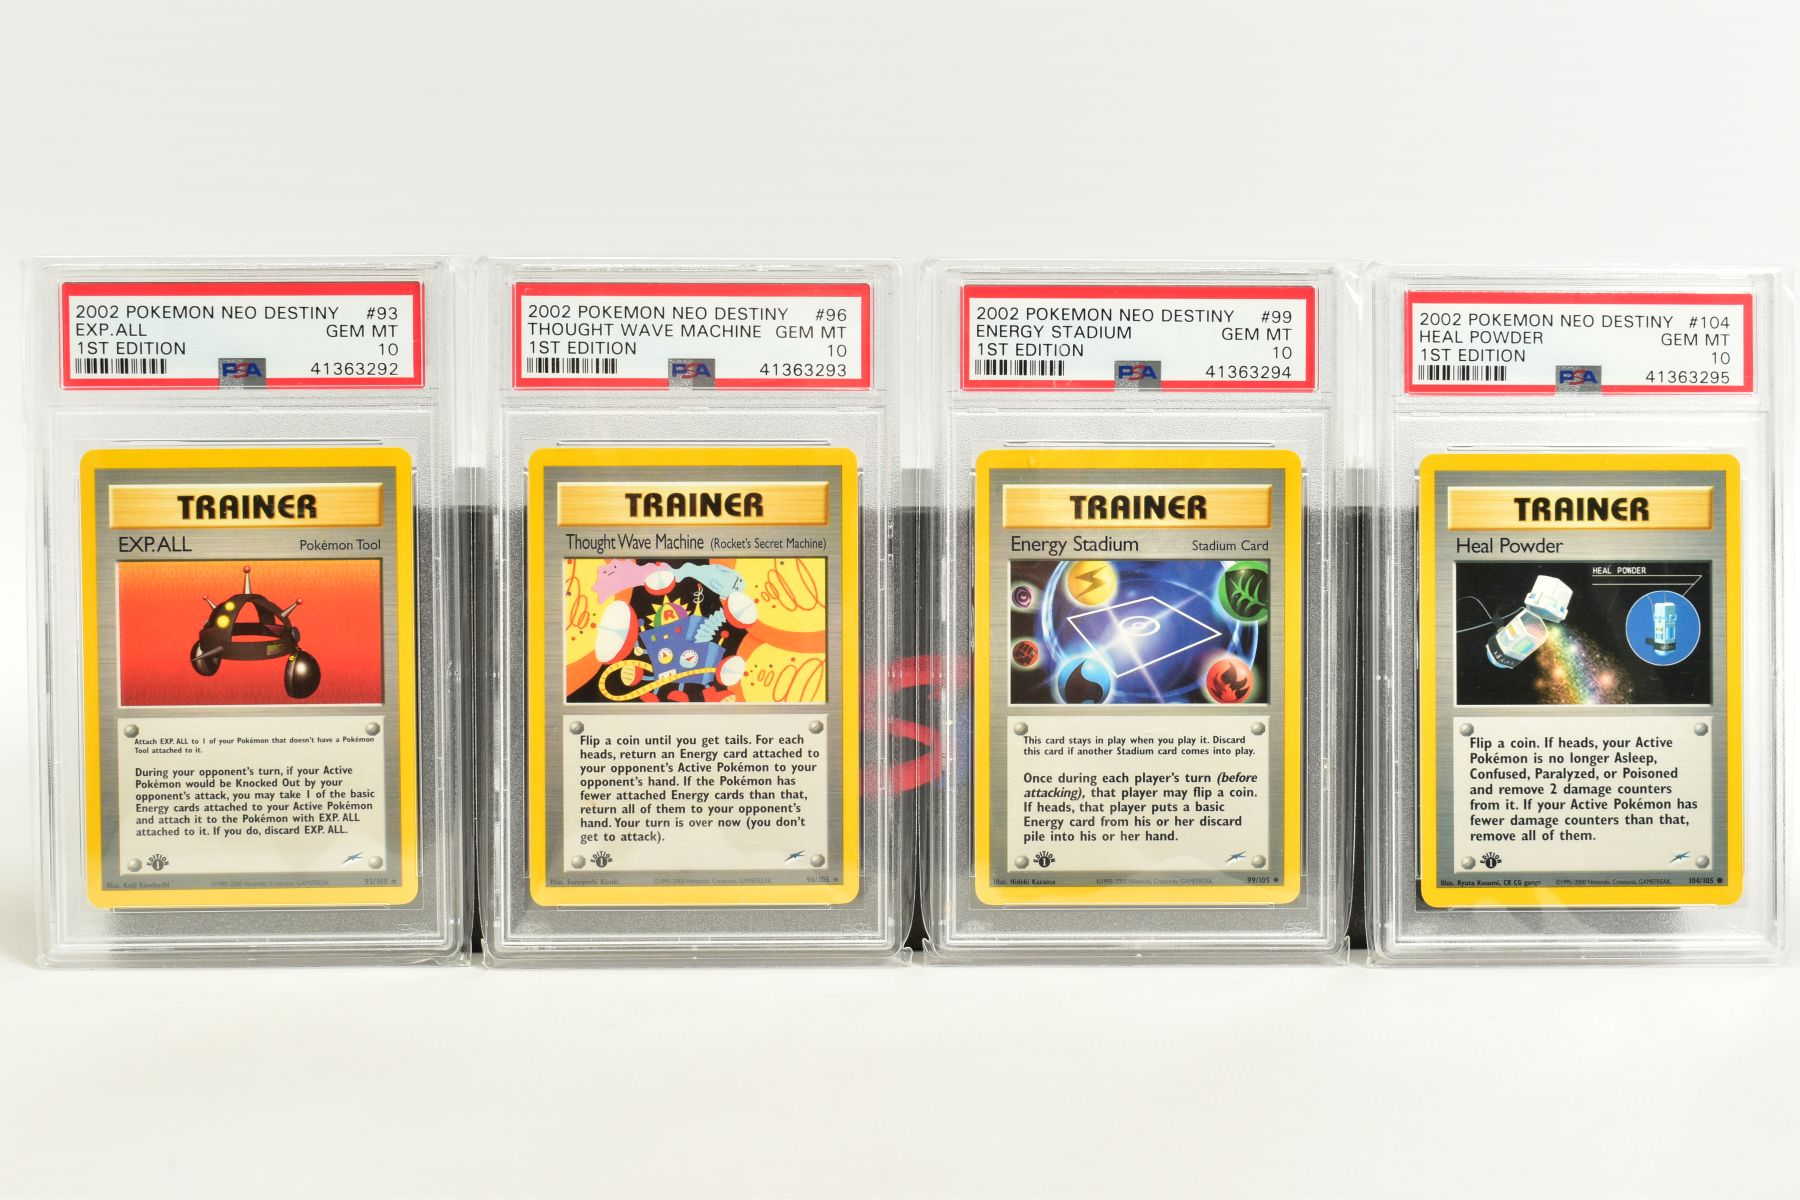 A QUANTITY OF PSA GRADED POKEMON 1ST EDITION NEO DESTINY SET CARDS, all are graded GEM MINT 10 and - Image 7 of 7